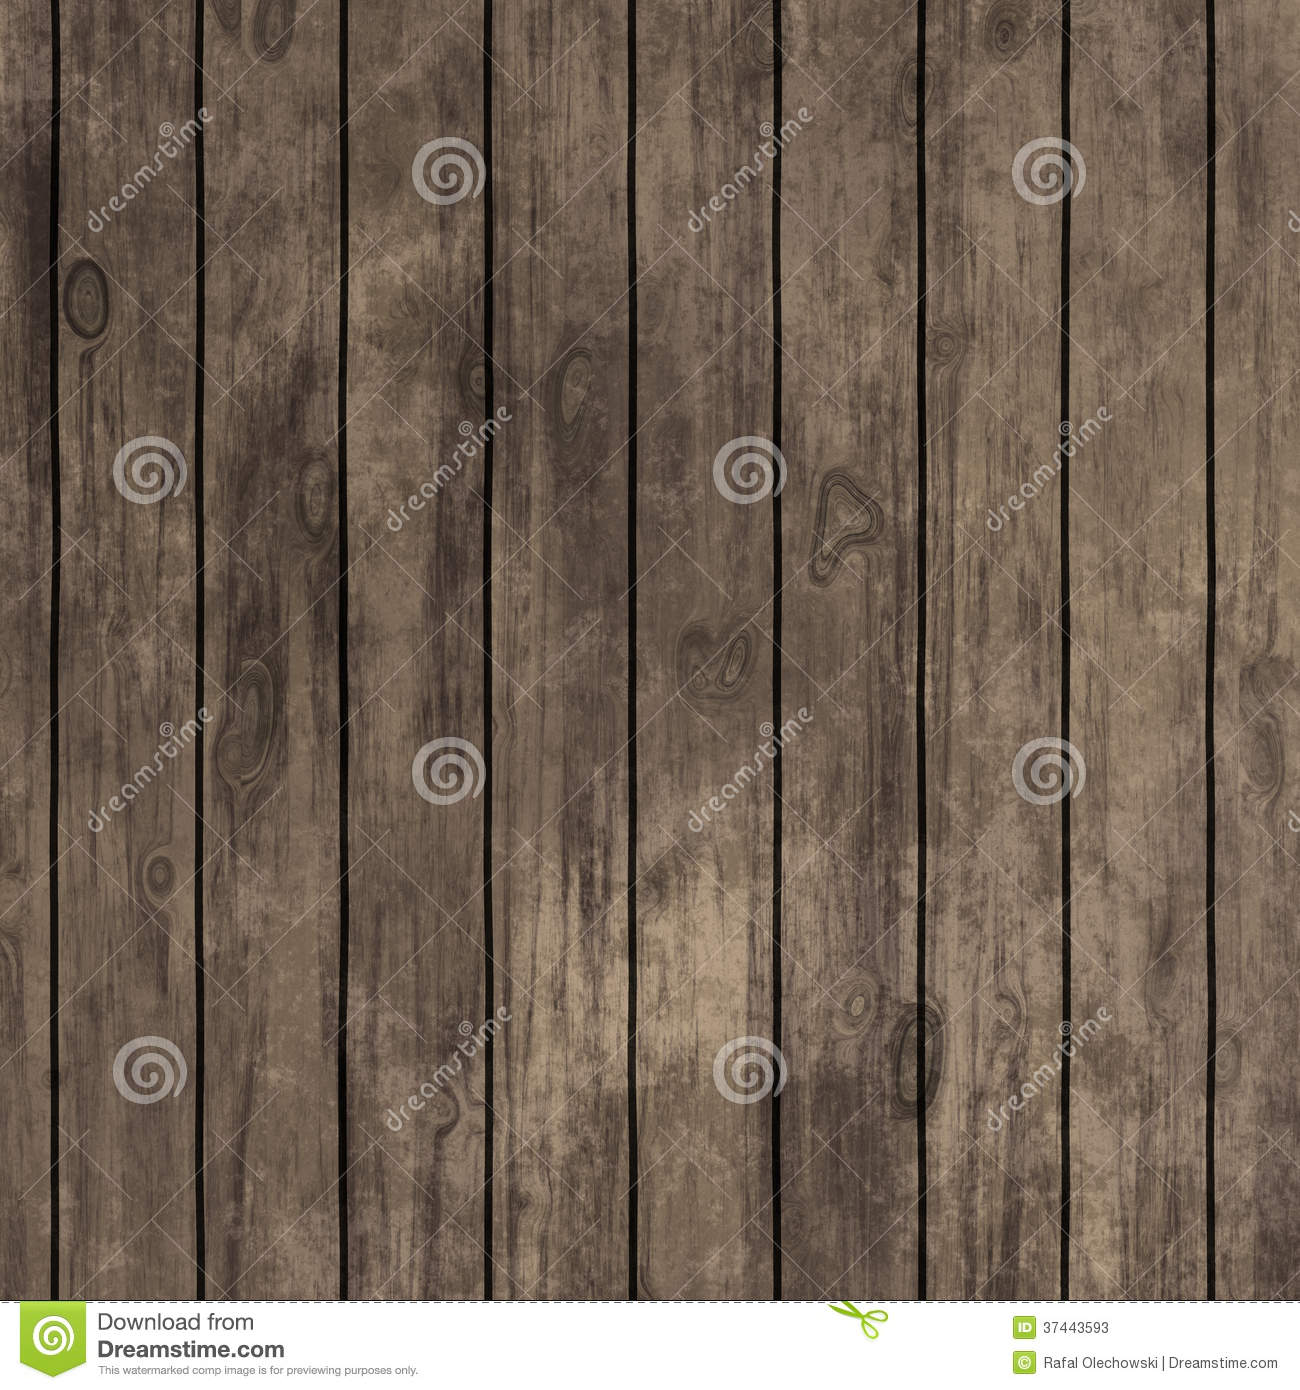 Wood texture or background of old grunge oak